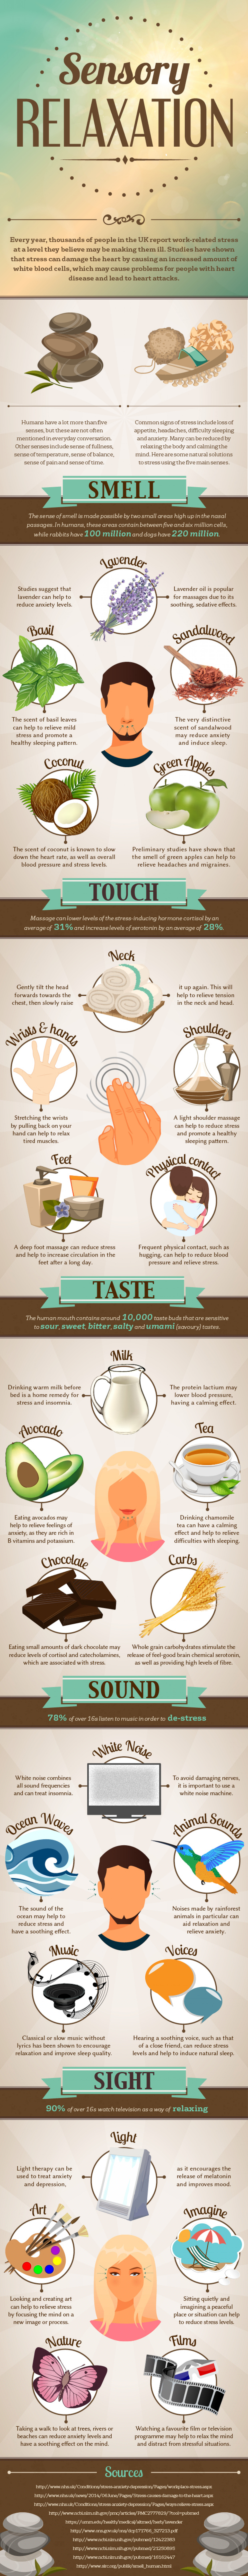 Sensory Relaxation Infographic